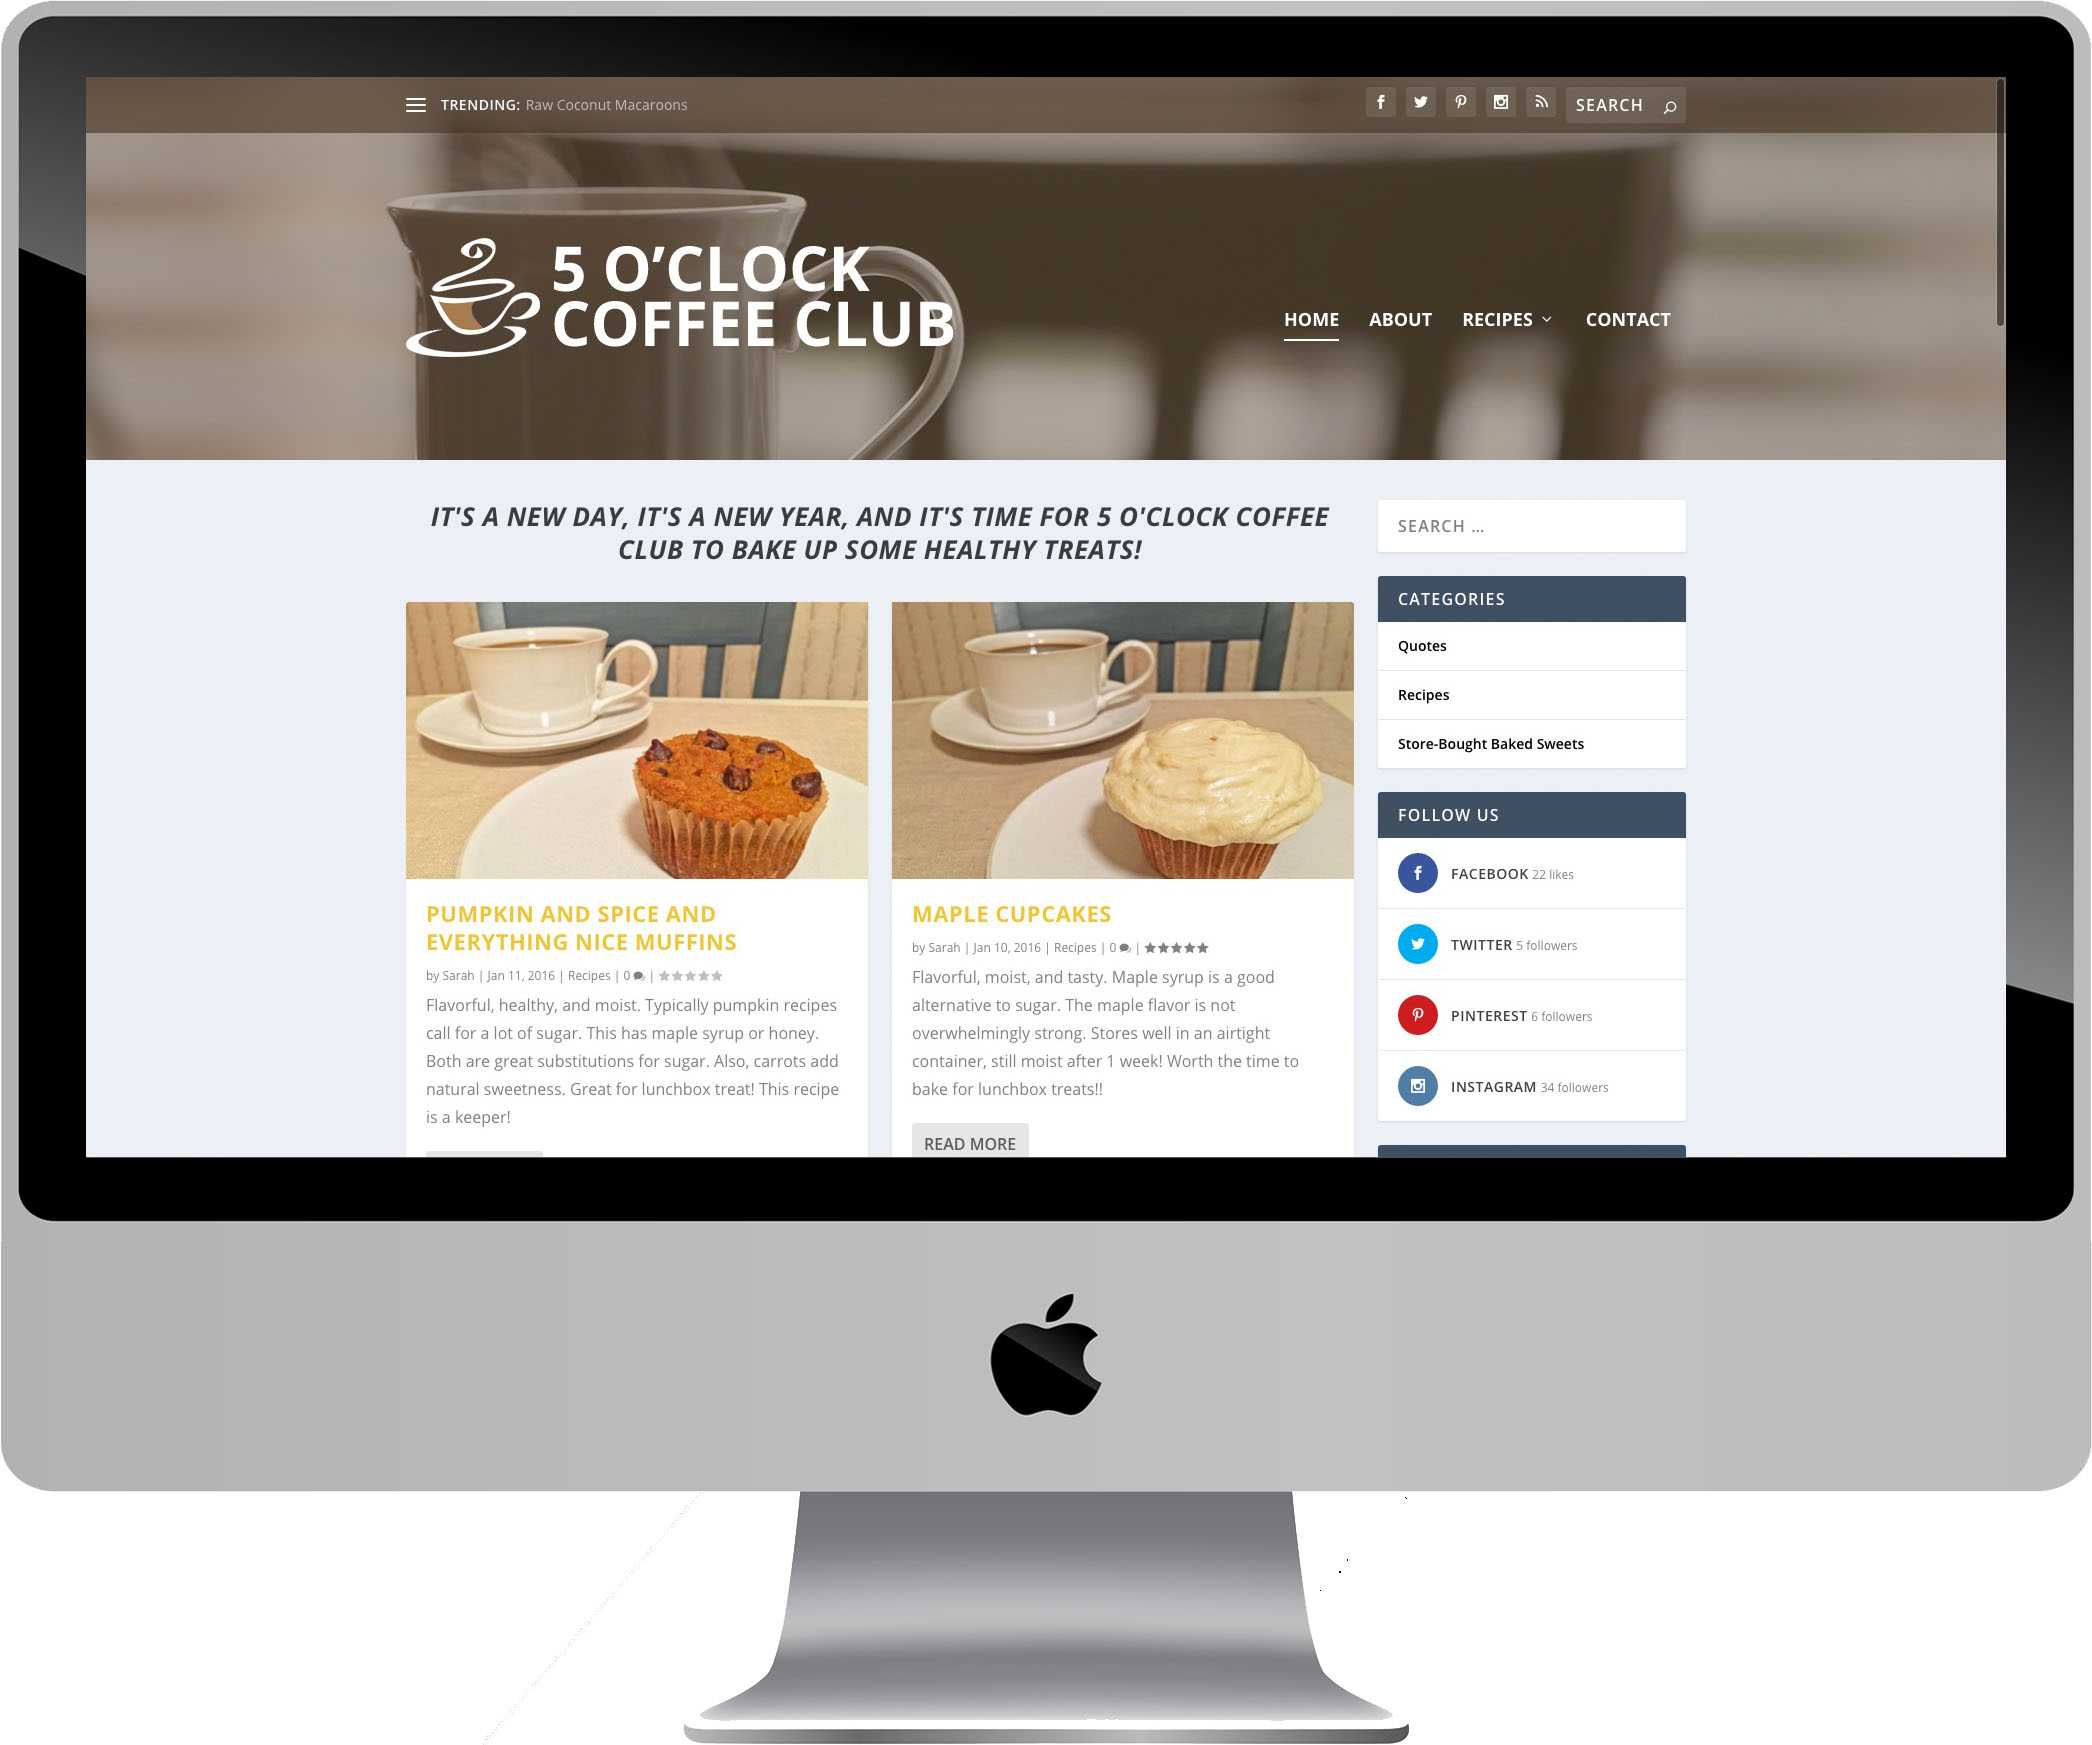 5 O'Clock Coffee Club Website Design on a Desktop